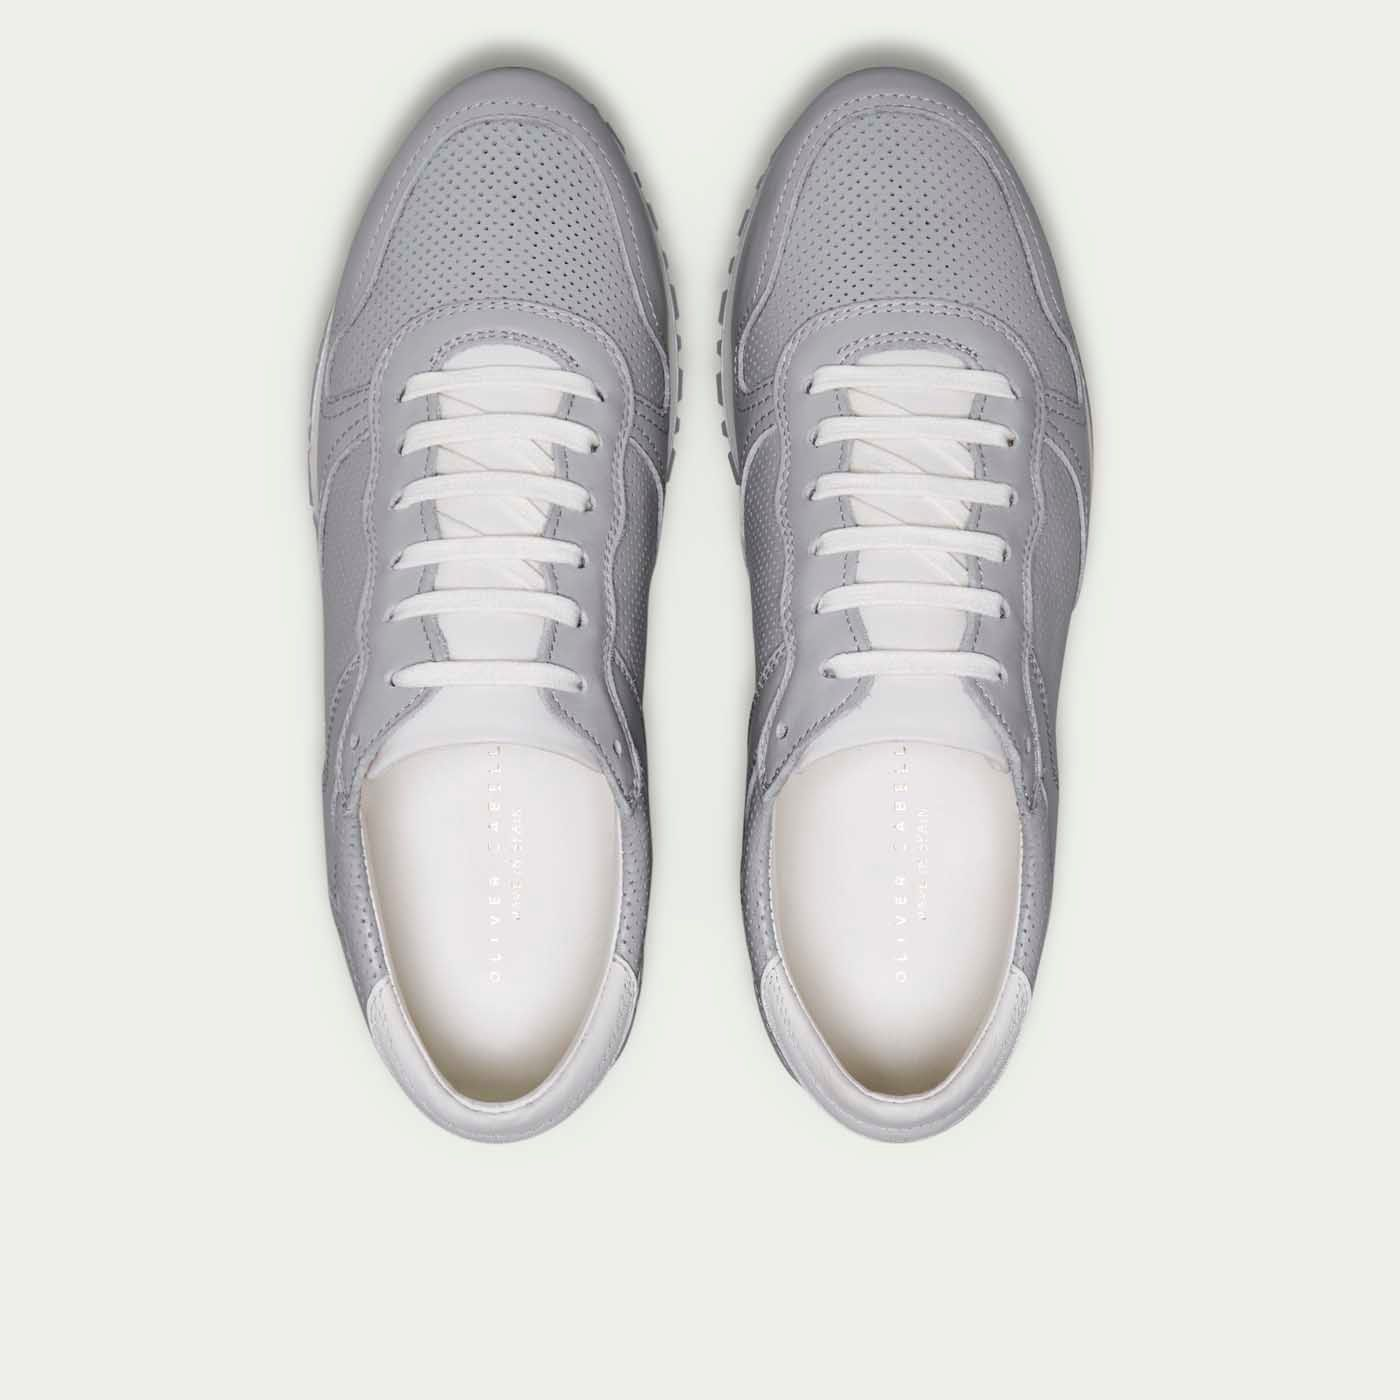 Alloy Rennes Sneakers   2